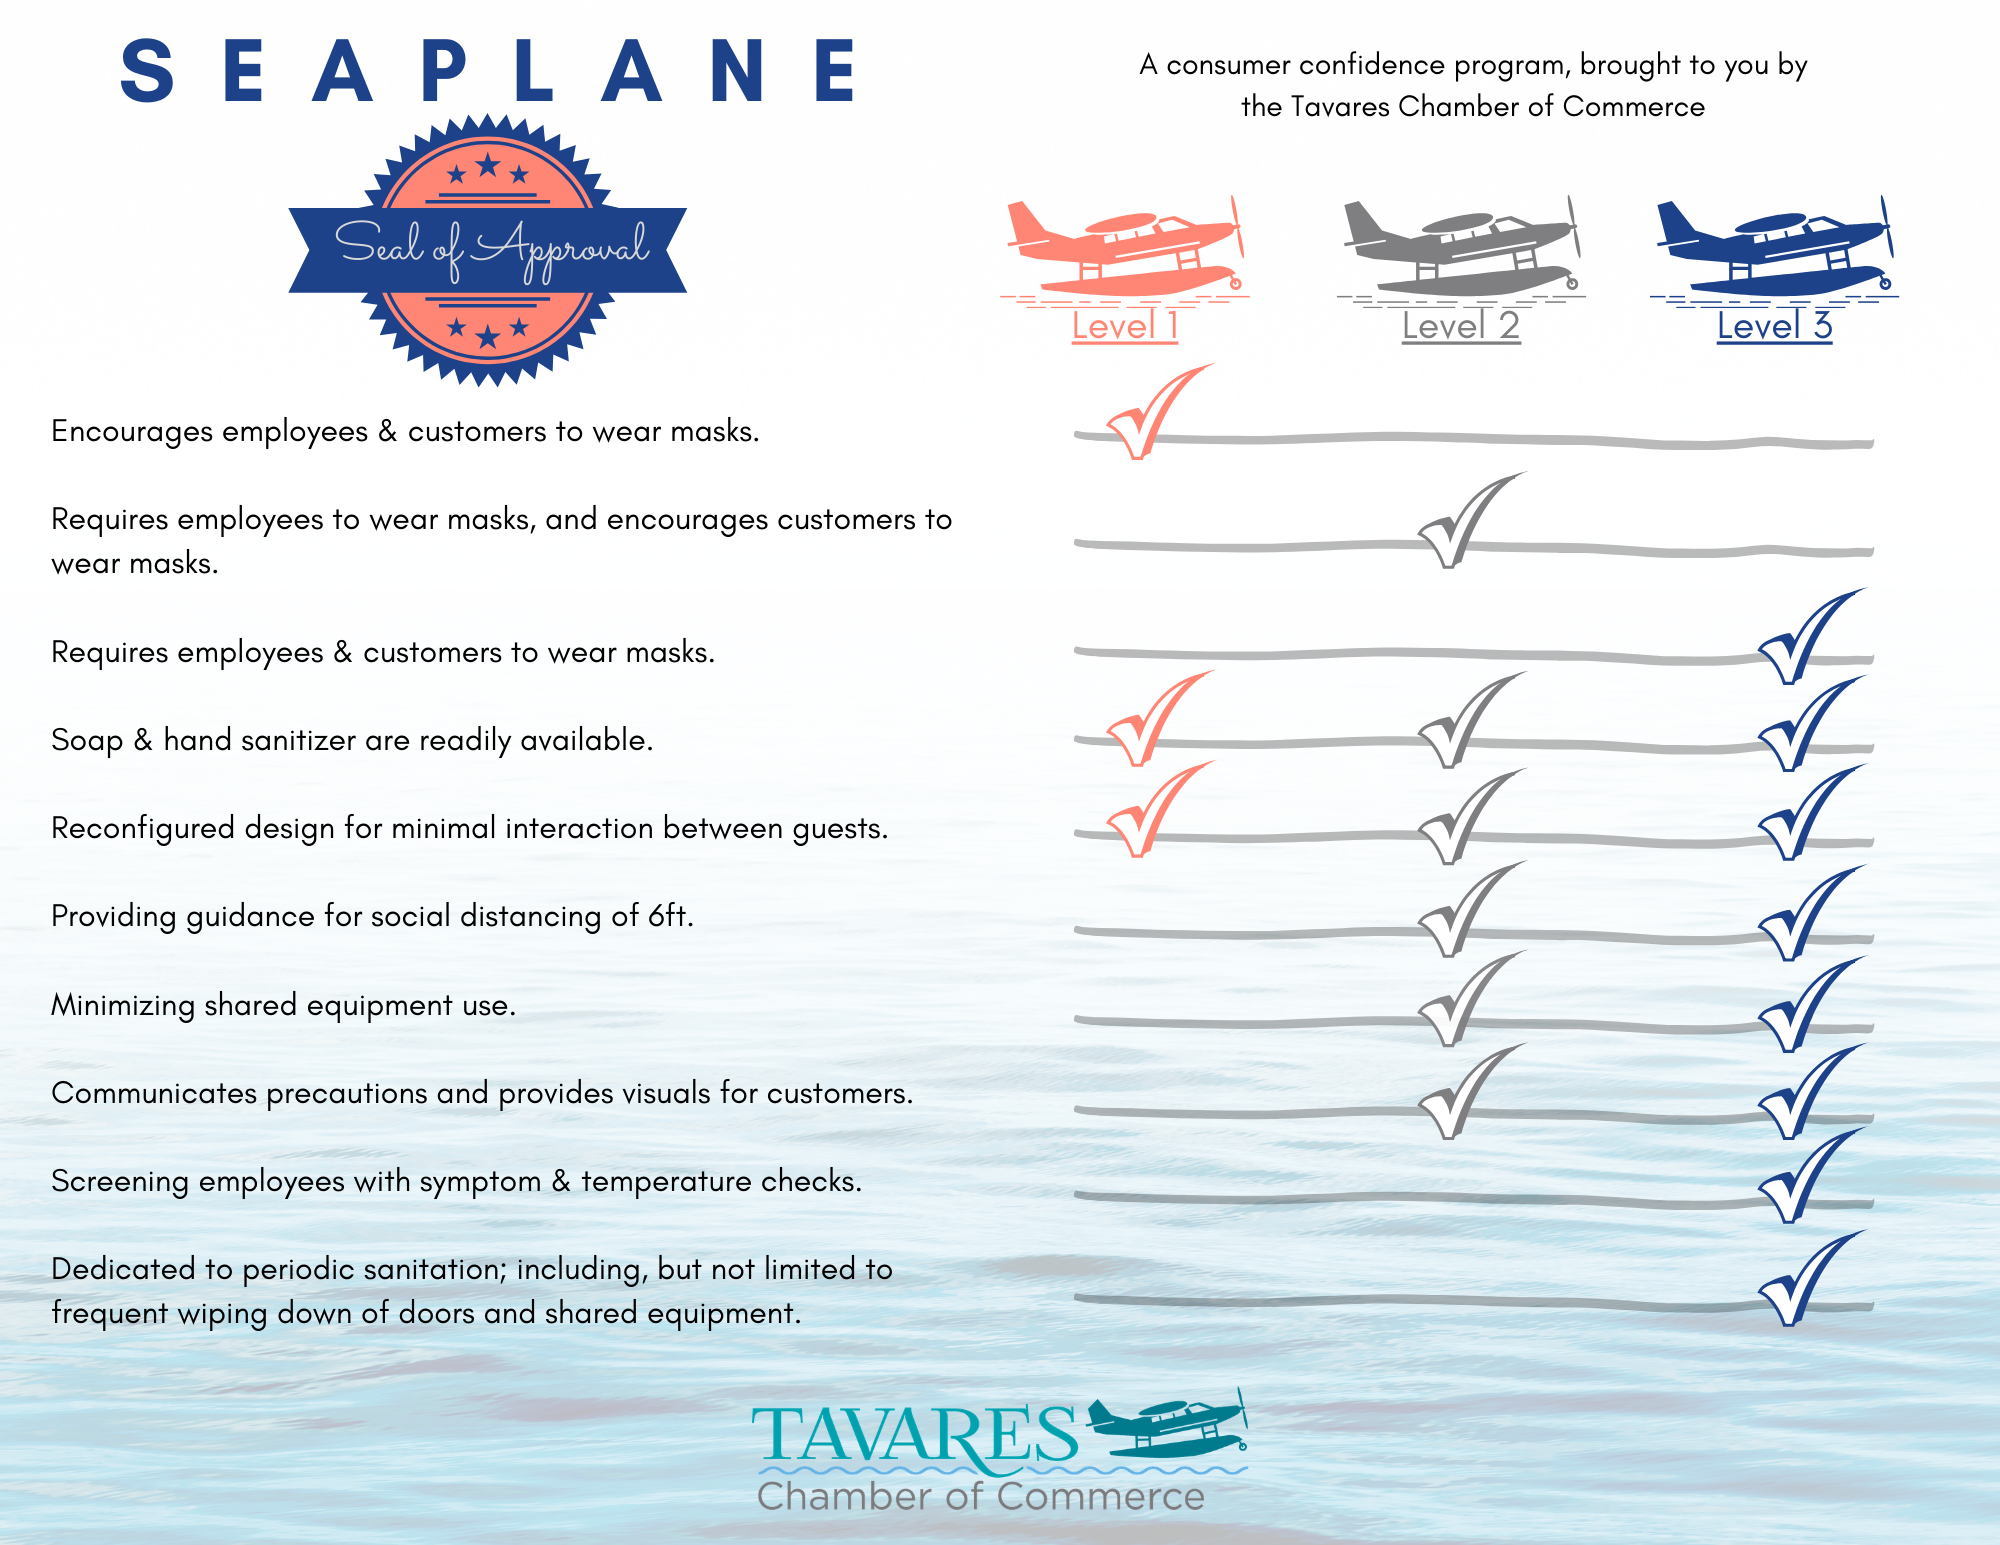 Seaplane Seal of Approval Guidelines